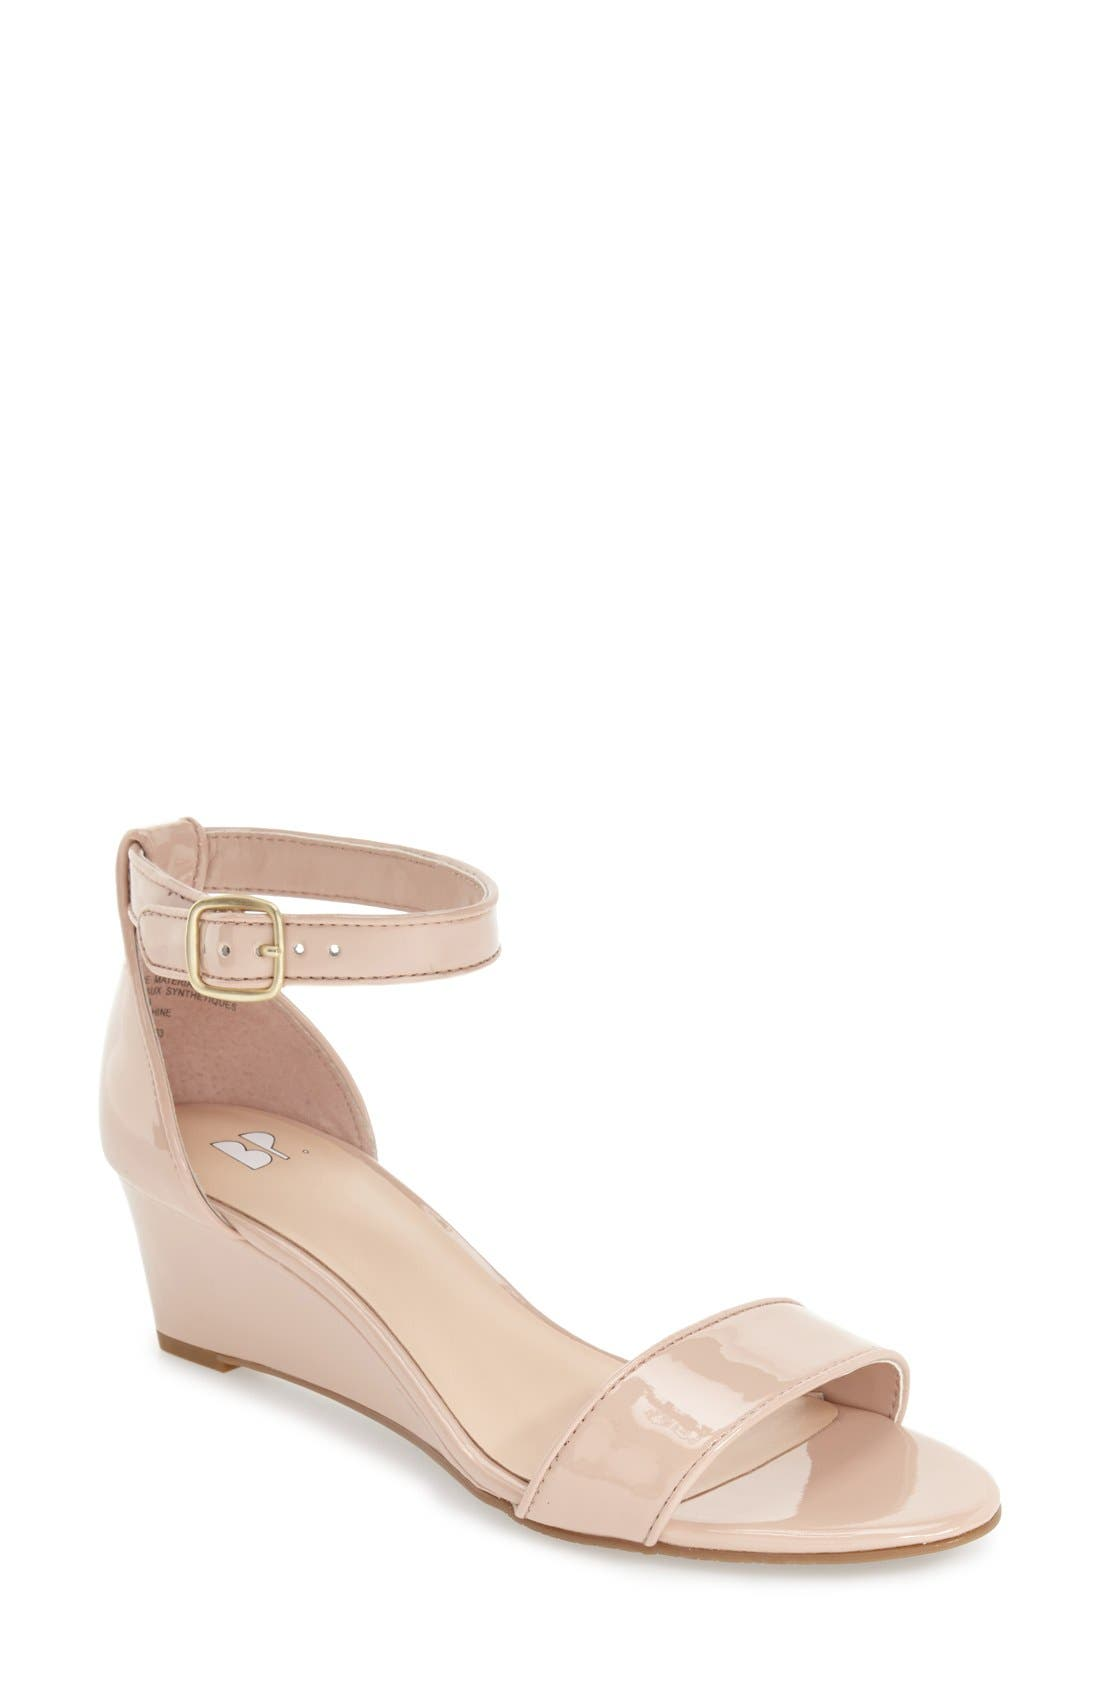 Alternate Image 1 Selected - BP. 'Roxie' Wedge Sandal (Women)